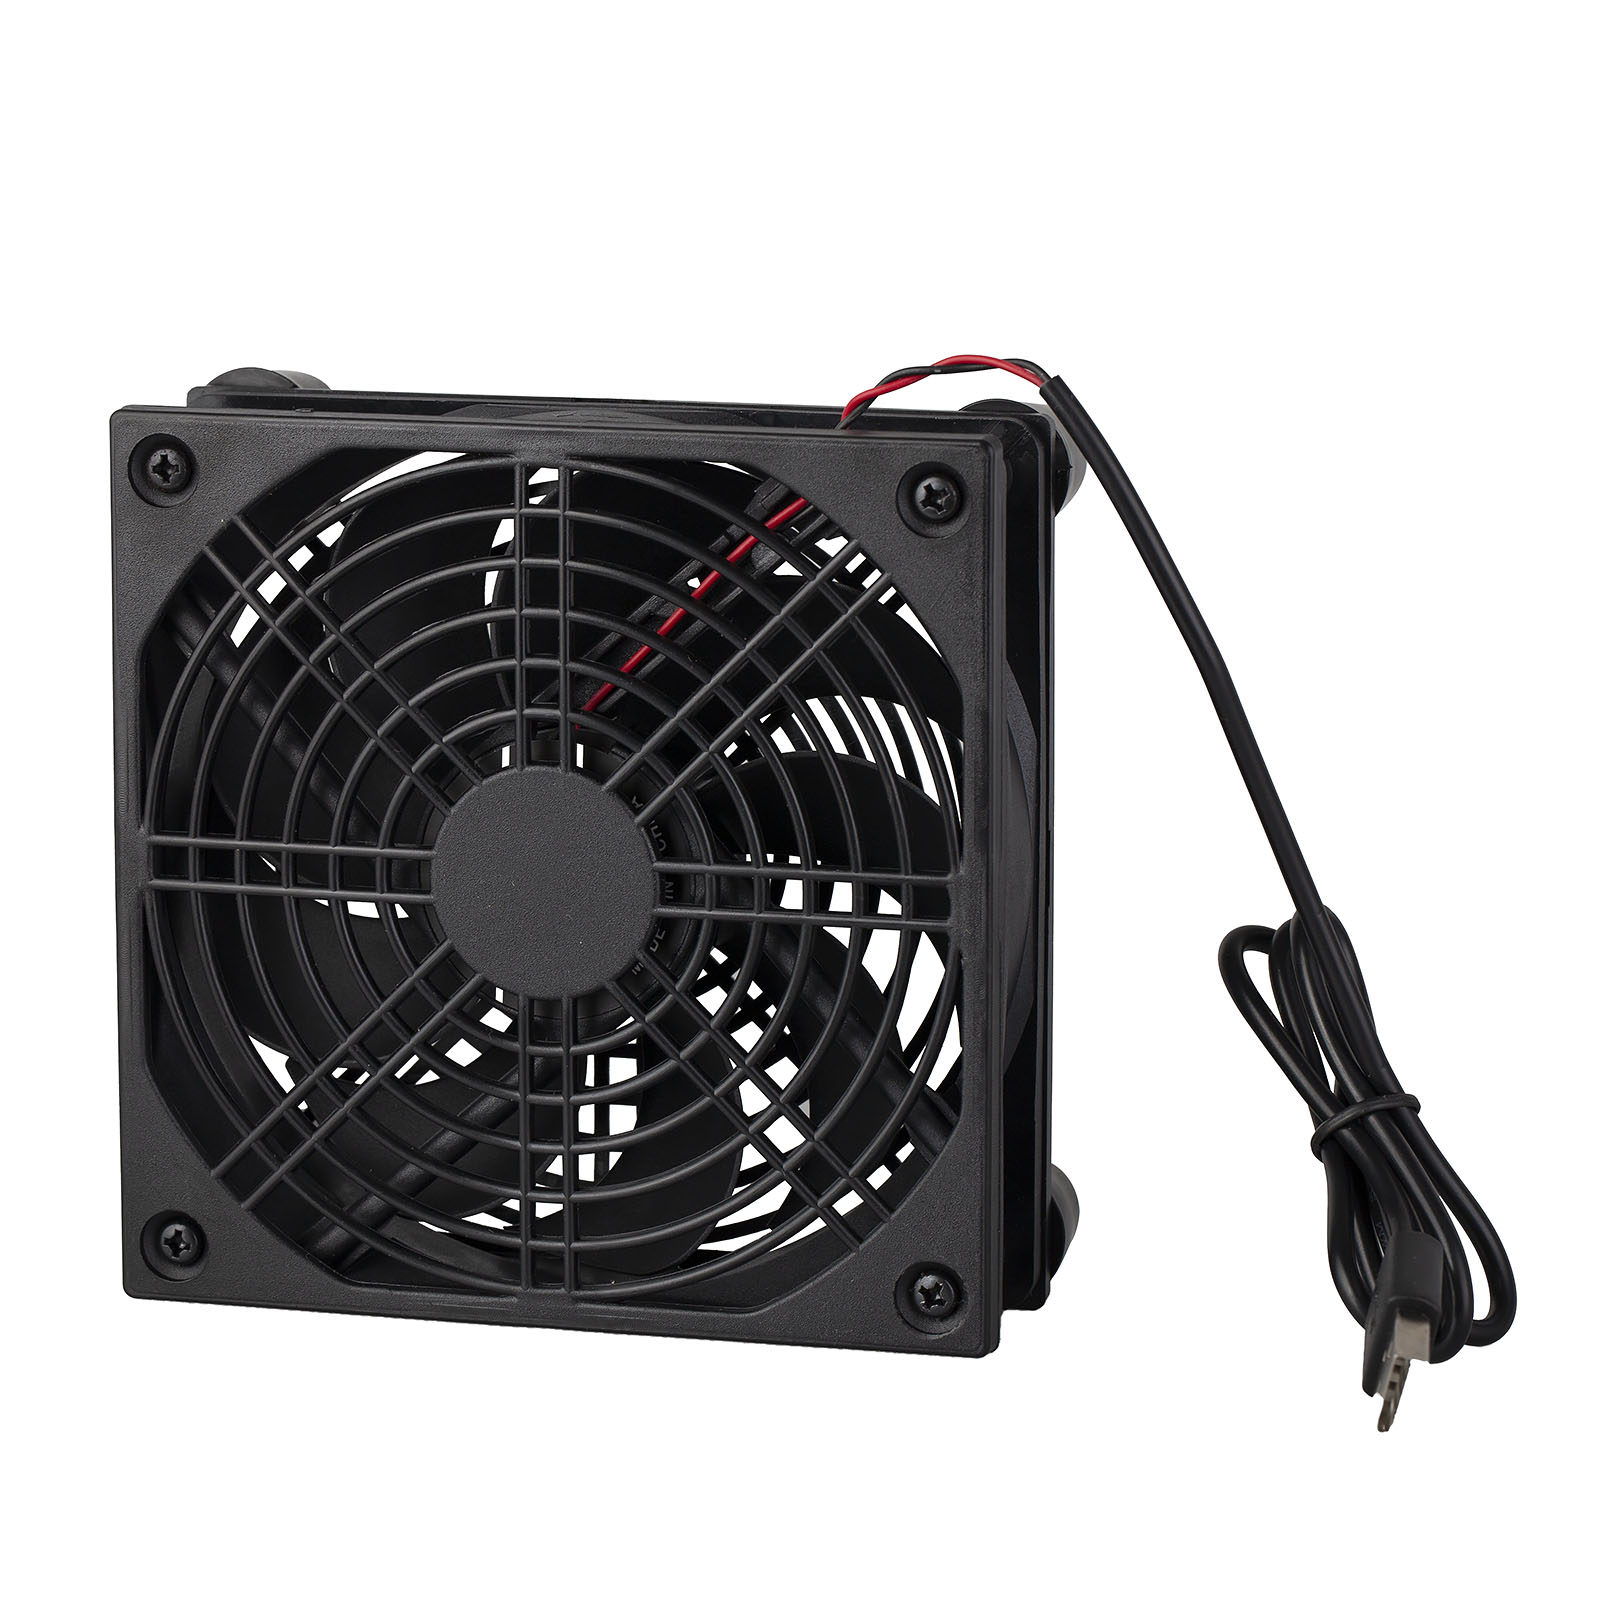 120mm USB Cooling Fan Quiet Cooler Stand 1200RPM for HDD Computer Router TV Box